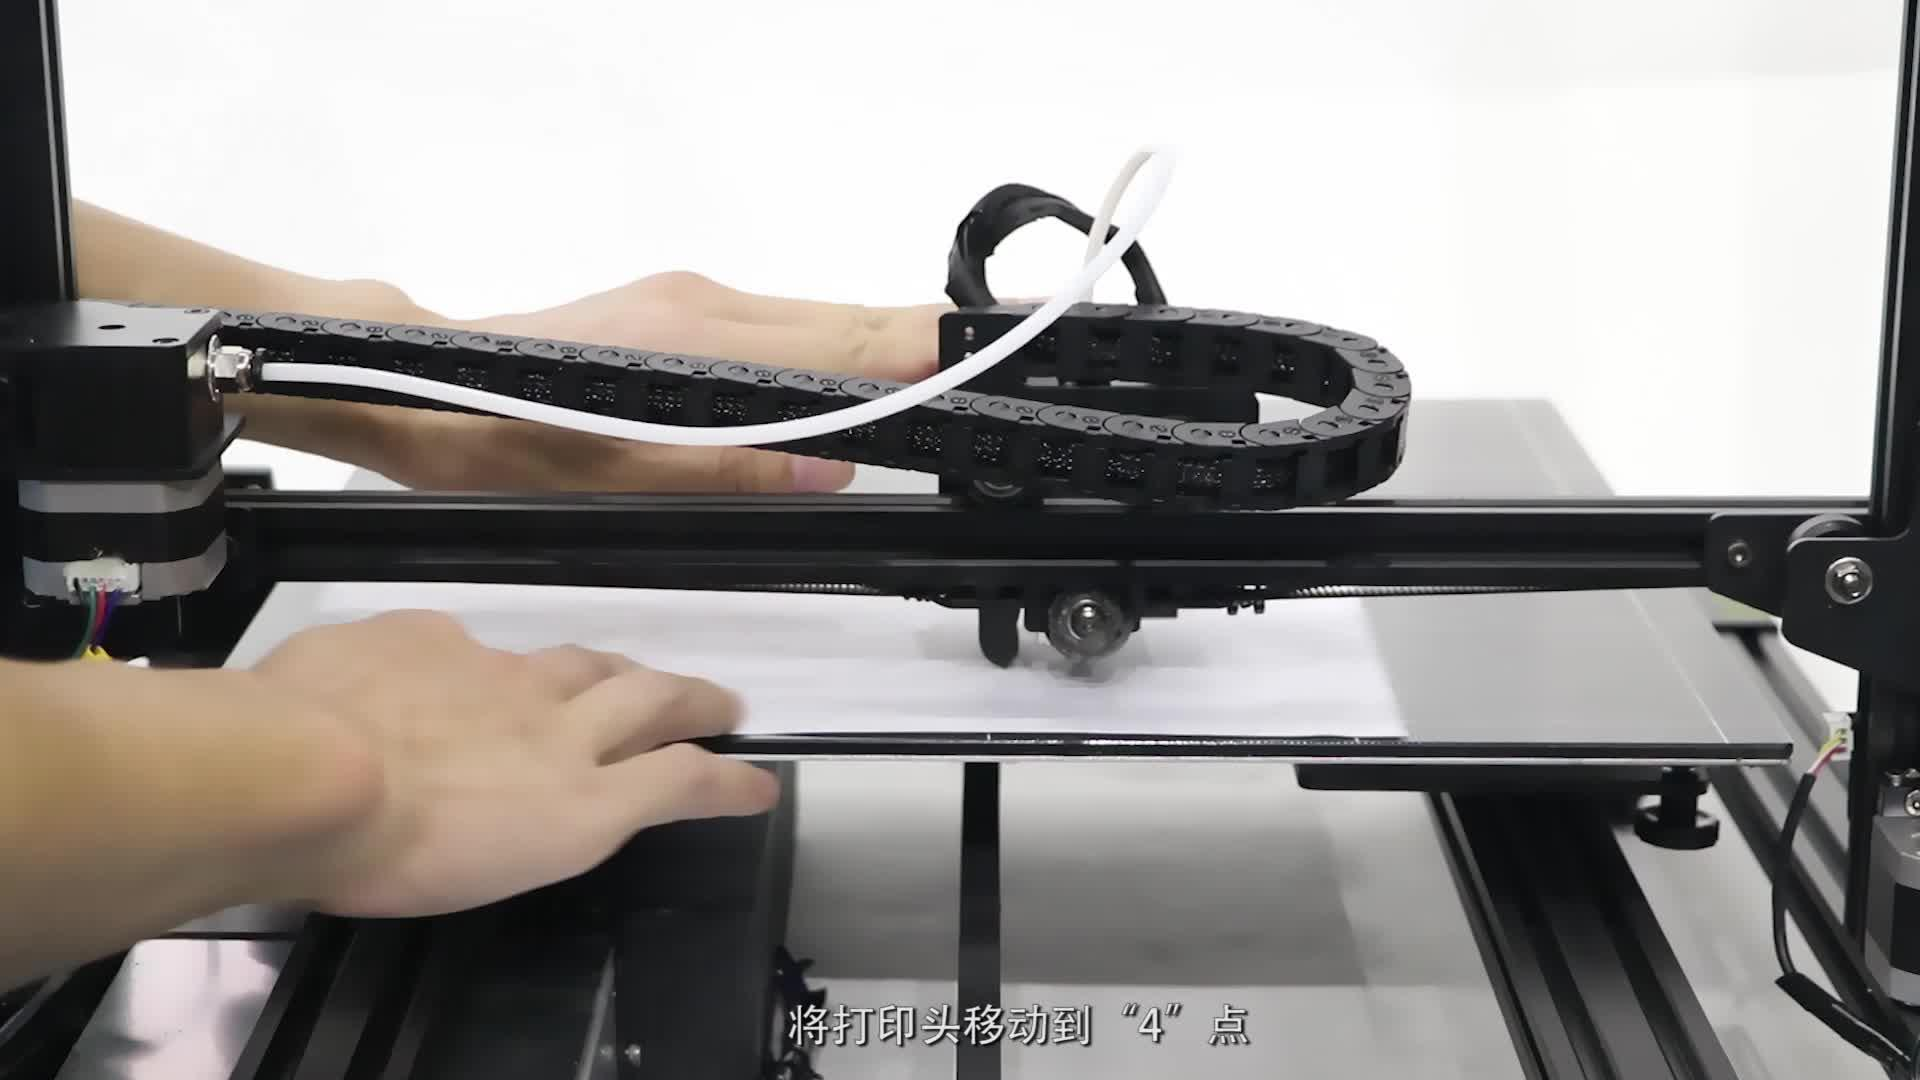 ANYCUBIC Chiron -- How to Manual Leveling the Heatbed Platform